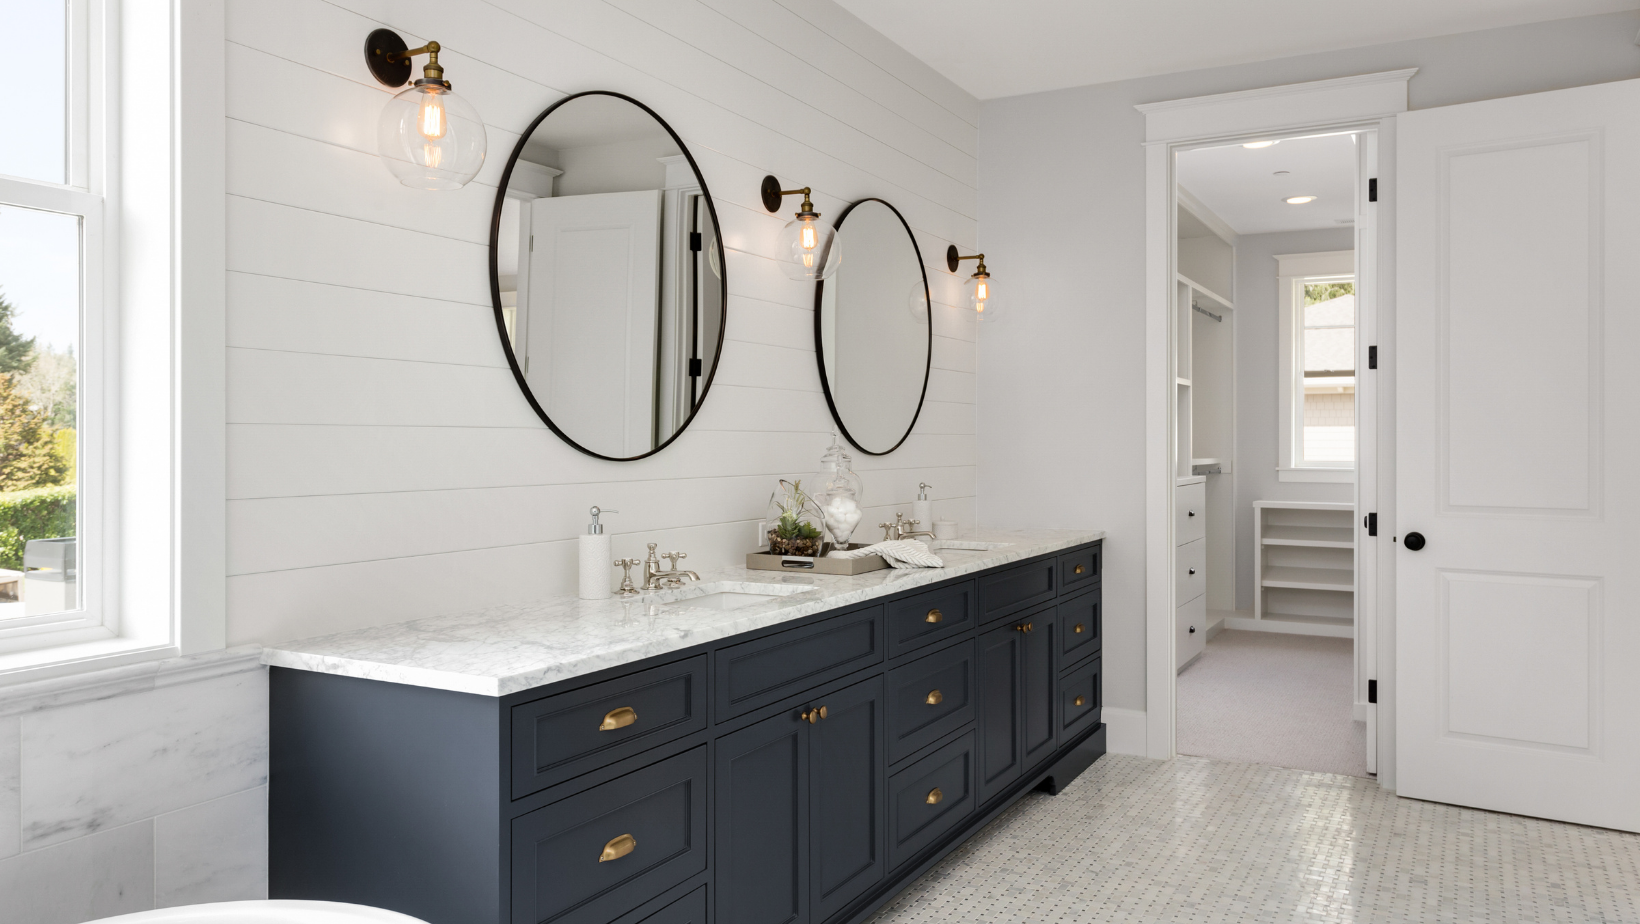 Five Top Tips for Awesome Bathroom Lighting